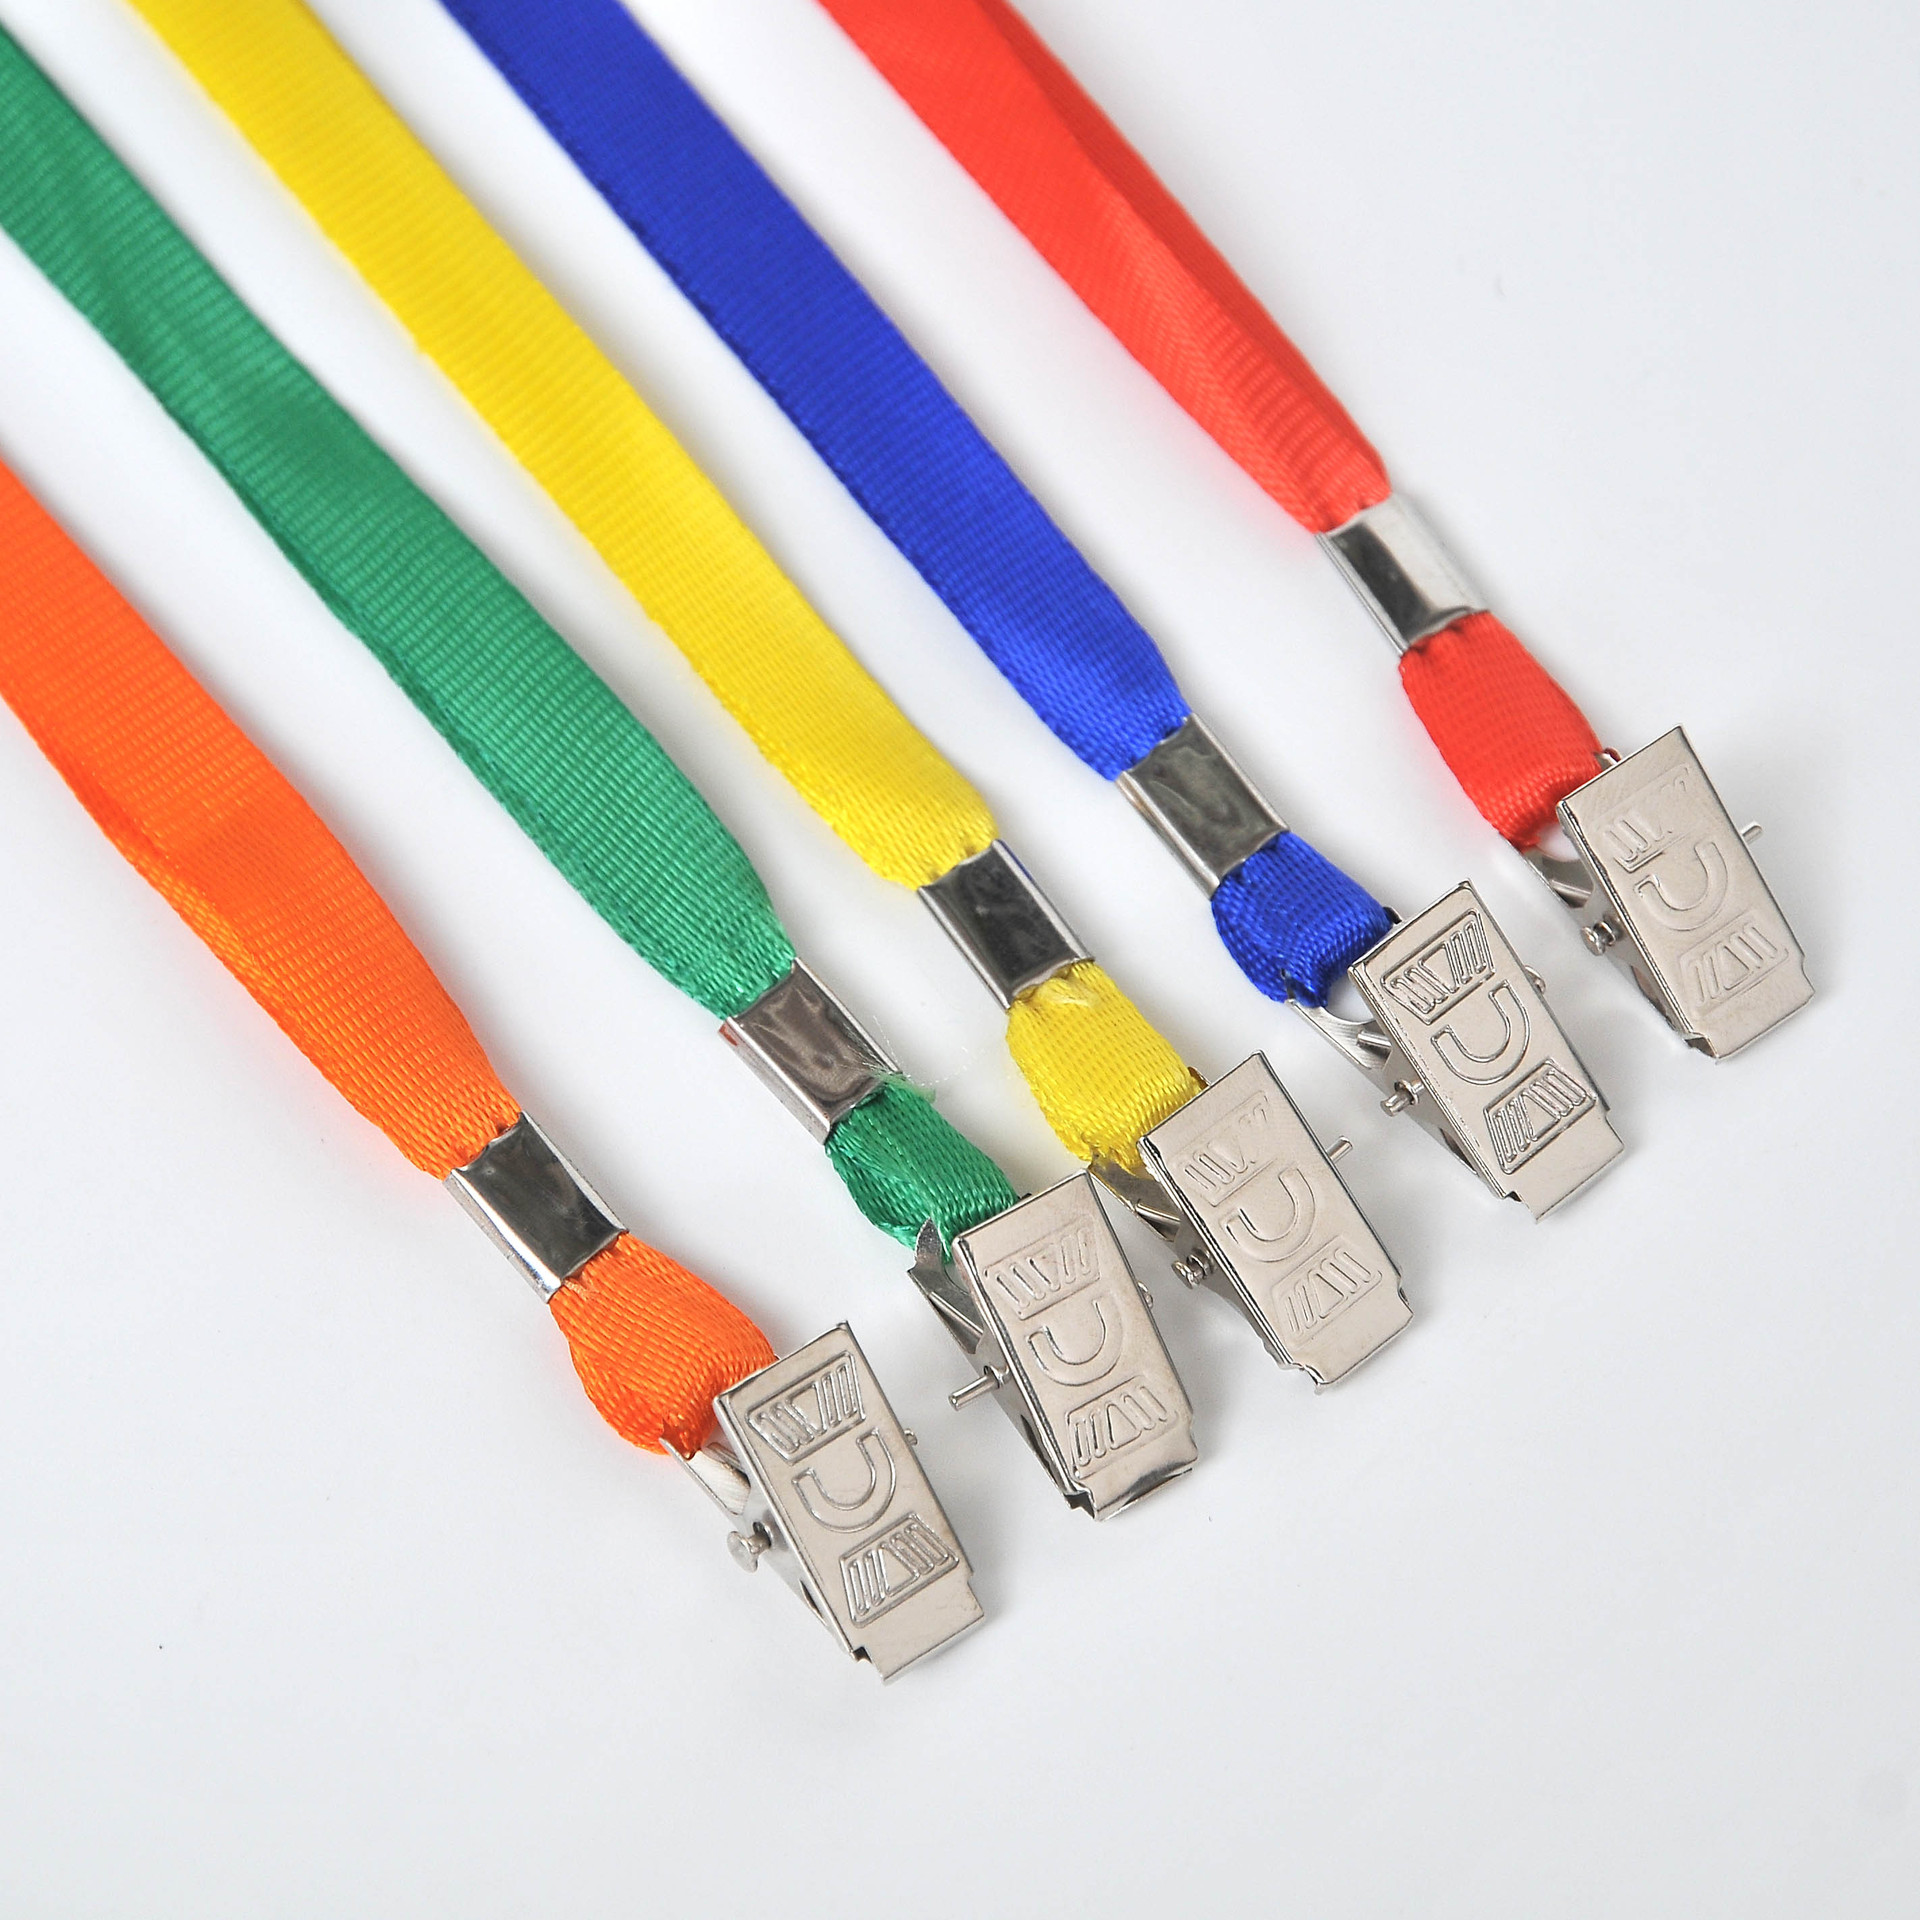 1cm Work Permit Badge Lanyard Documents Lanyard Label Polydown Lanyard Can Be Printed Logo Metal Clip Lanyard